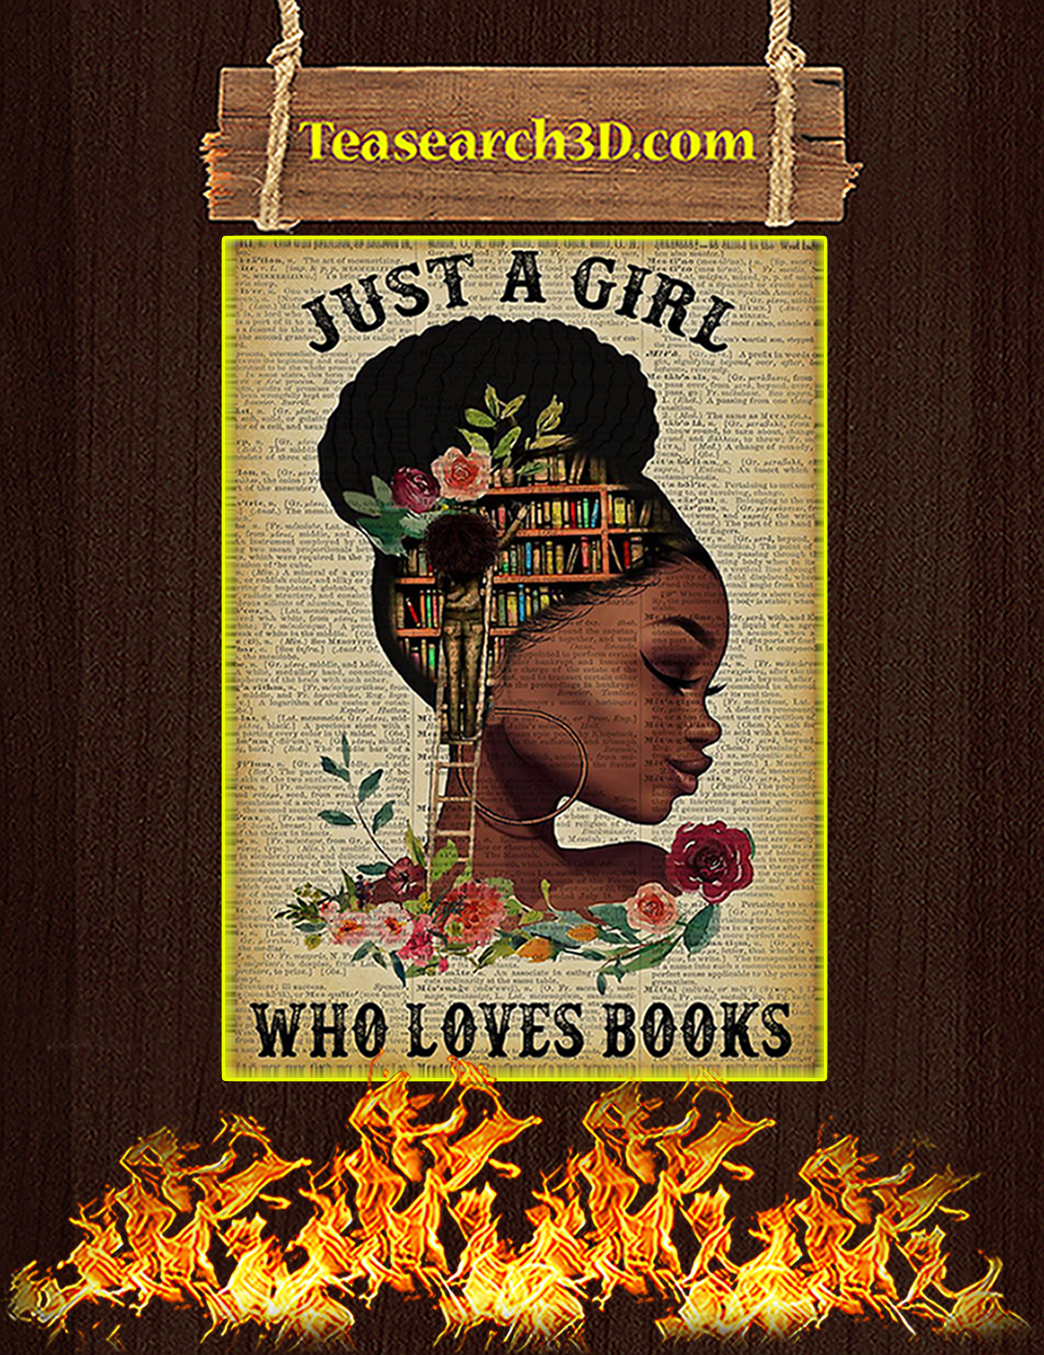 Black girl Just a girl who loves books poster A1